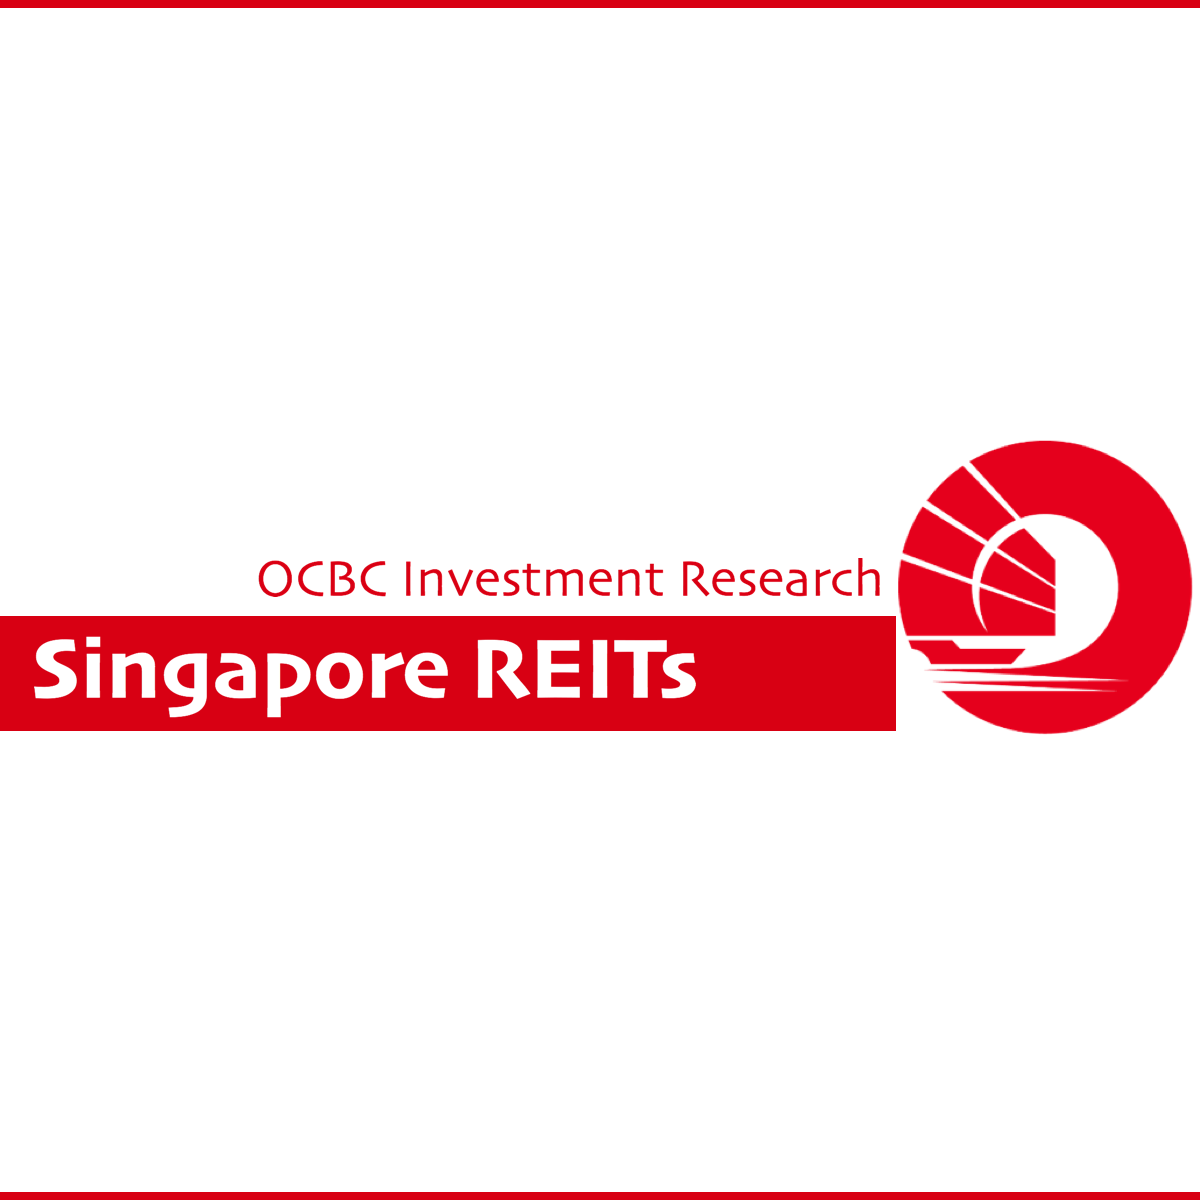 Singapore REITs - OCBC Investment Research 2018-07-31: Increase Defensiveness Among Defensives